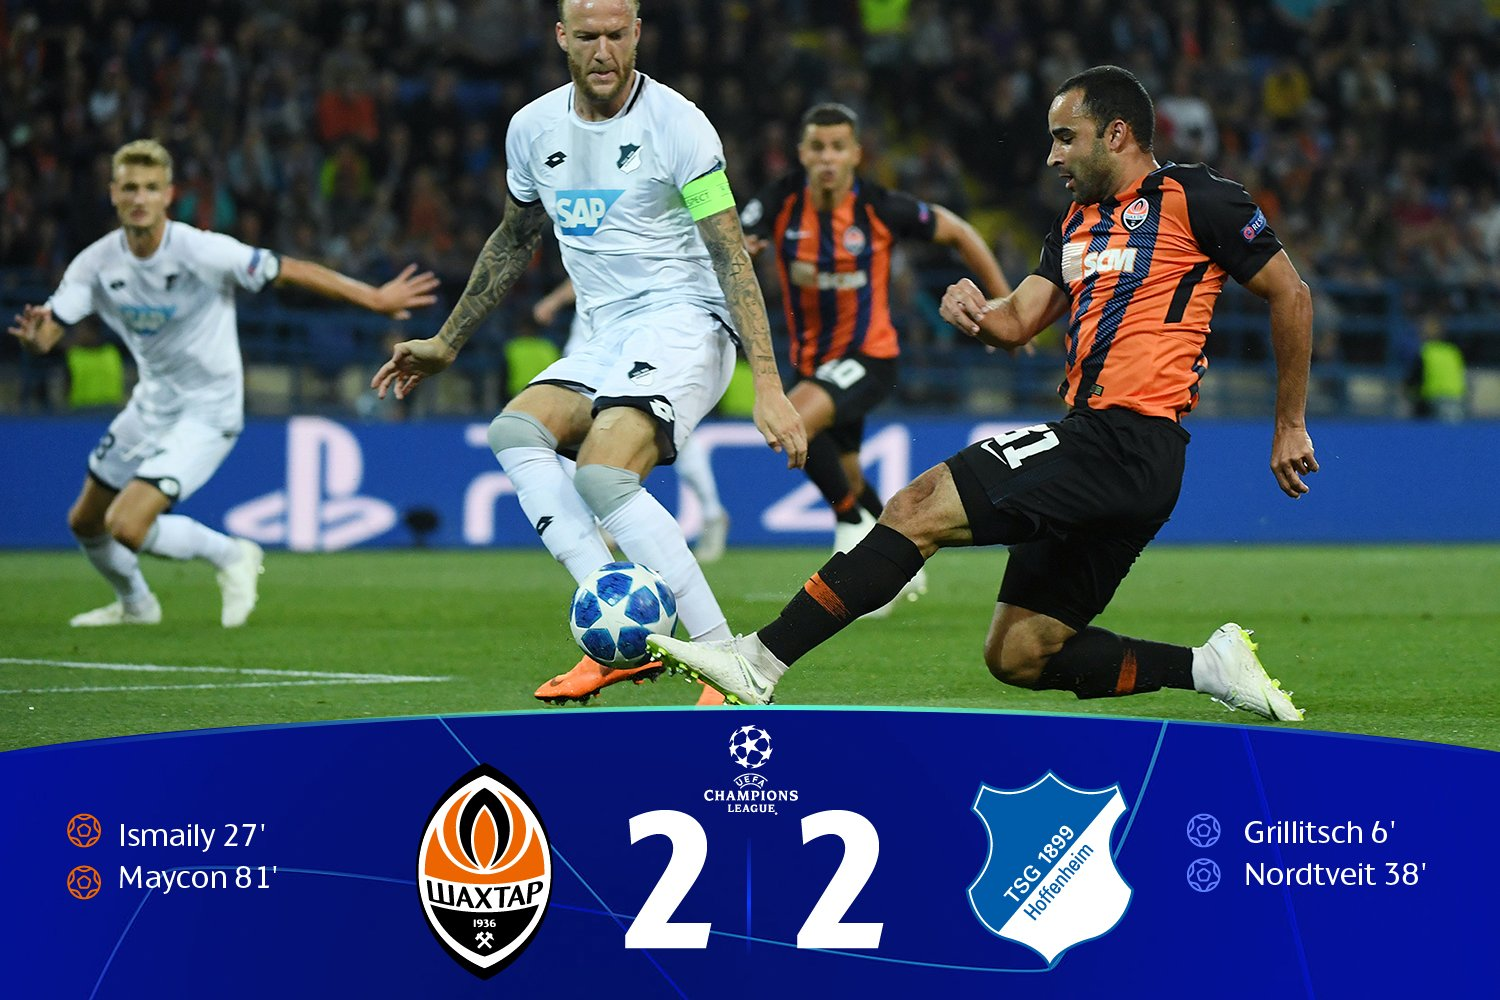 UCL: Kayode Missing In Shakhtar Donetsk Home Draw Vs Hoffenheim